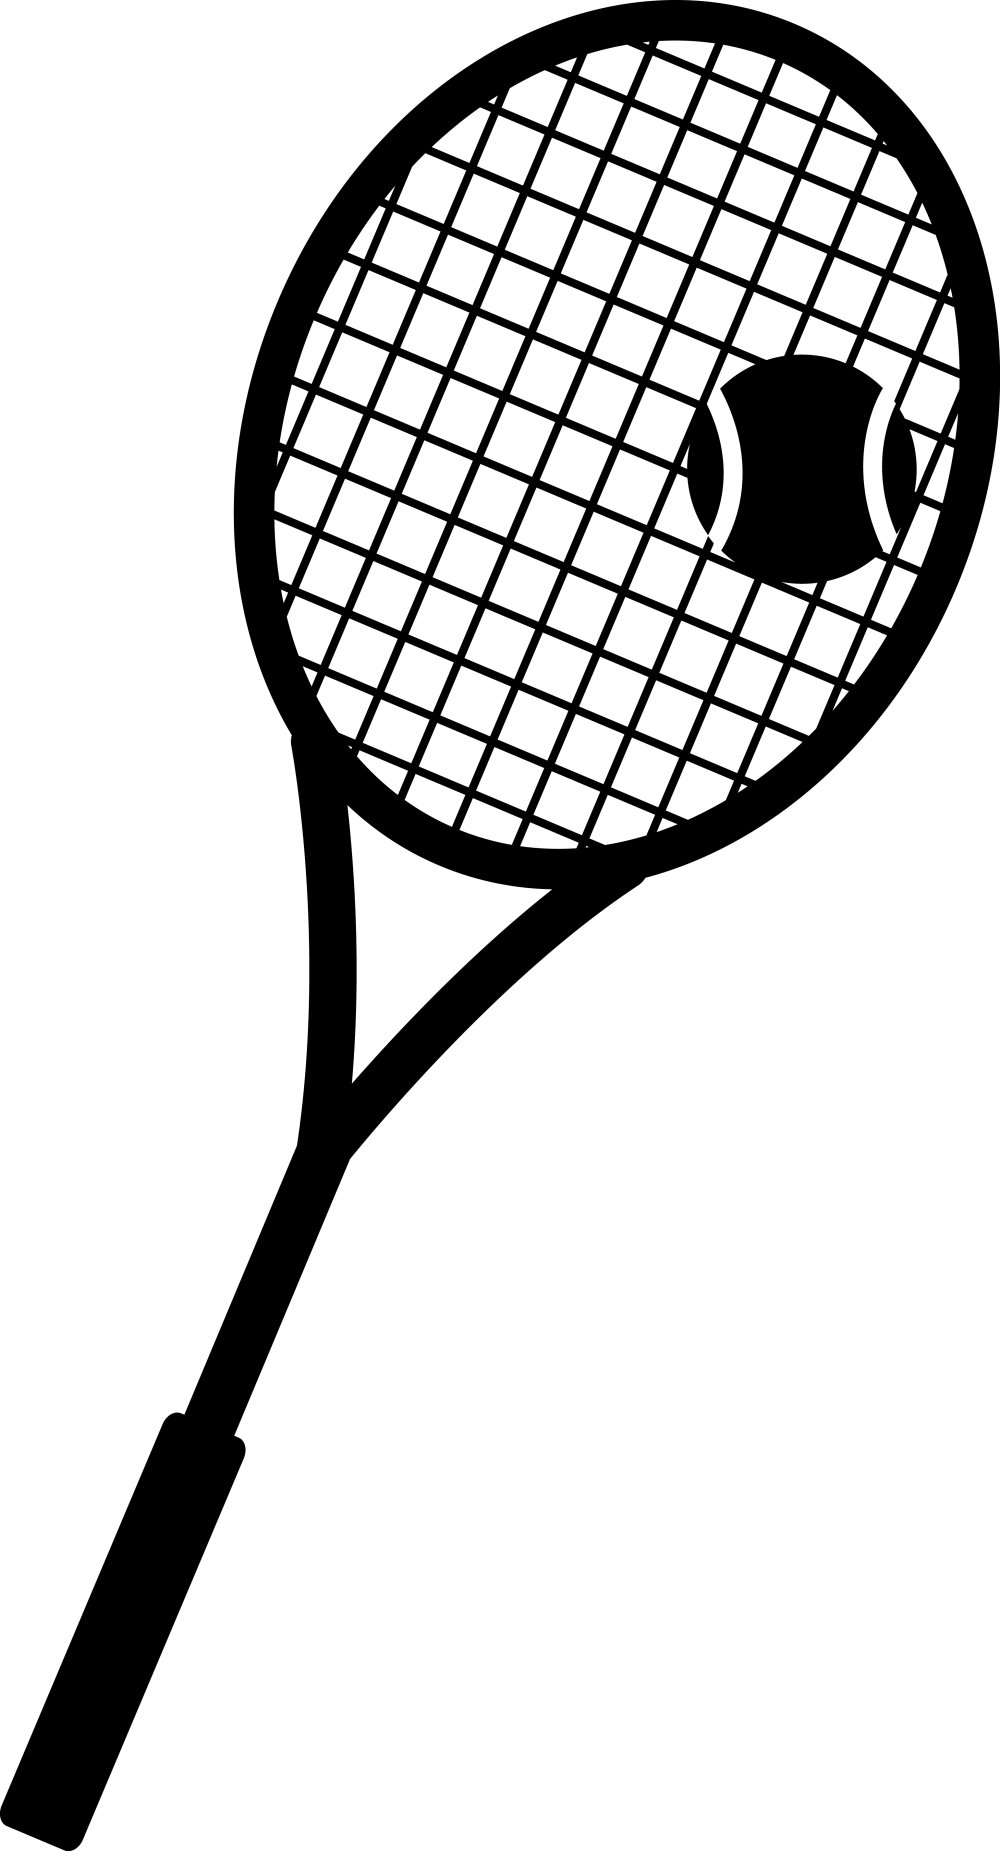 medium resolution of tennis ball clipart black and white clipart library free clipart